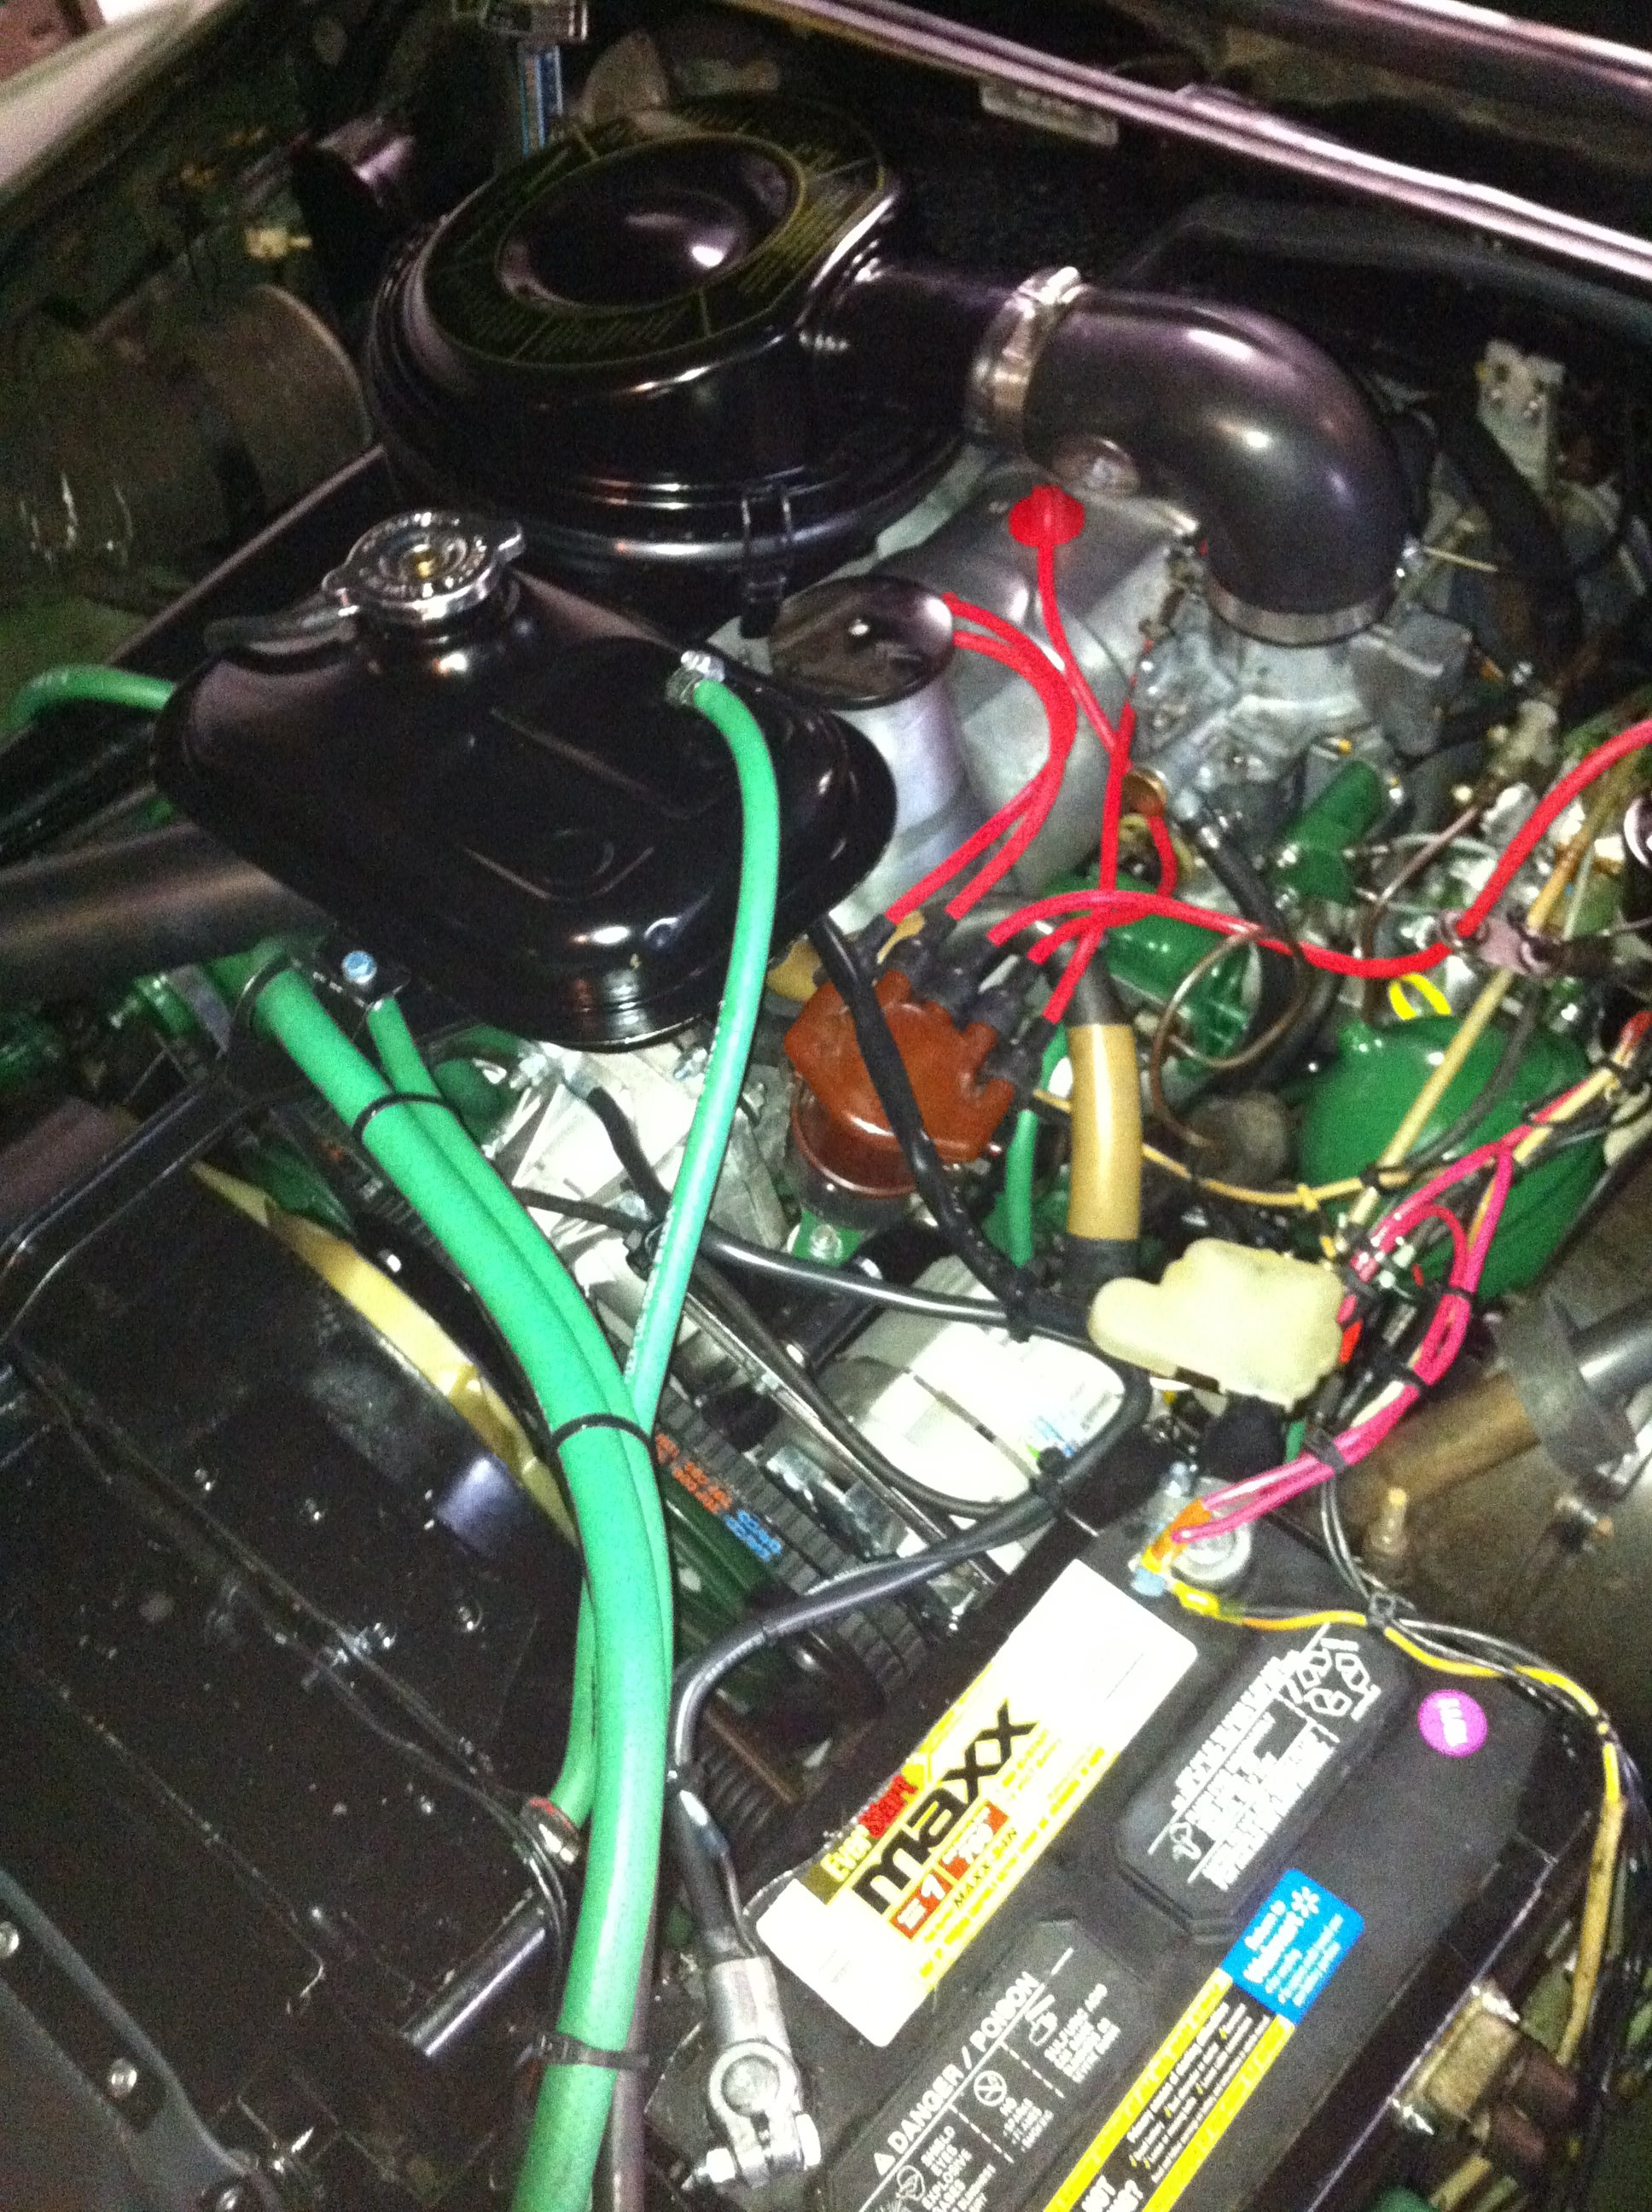 All of the bits go back in the engine, air cleaner goes in after hot valve adjustment